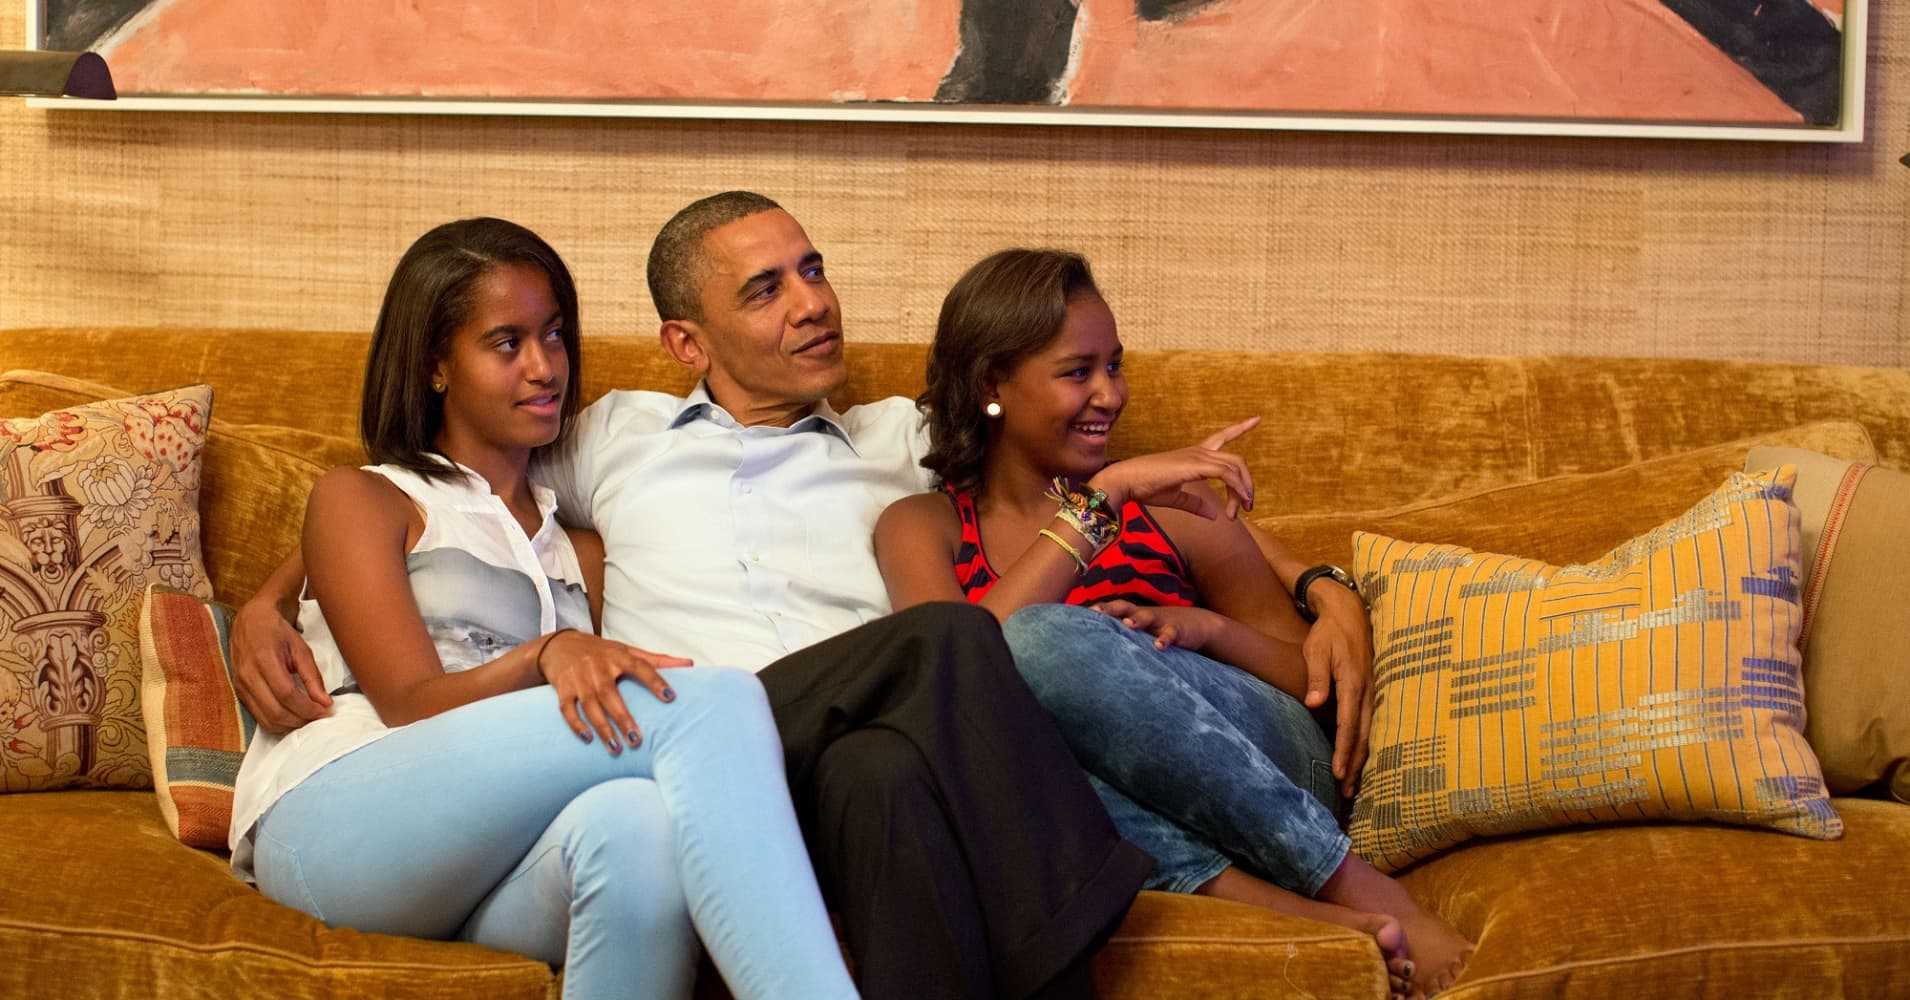 U.S. President Barack Obama and his daughters, Malia (L) and Sasha, watch on television as first lady Michelle Obama takes the stage to deliver her speech at the Democratic National Convention on September 4, 2012 in the Treaty Room of the White House in Washington, DC.